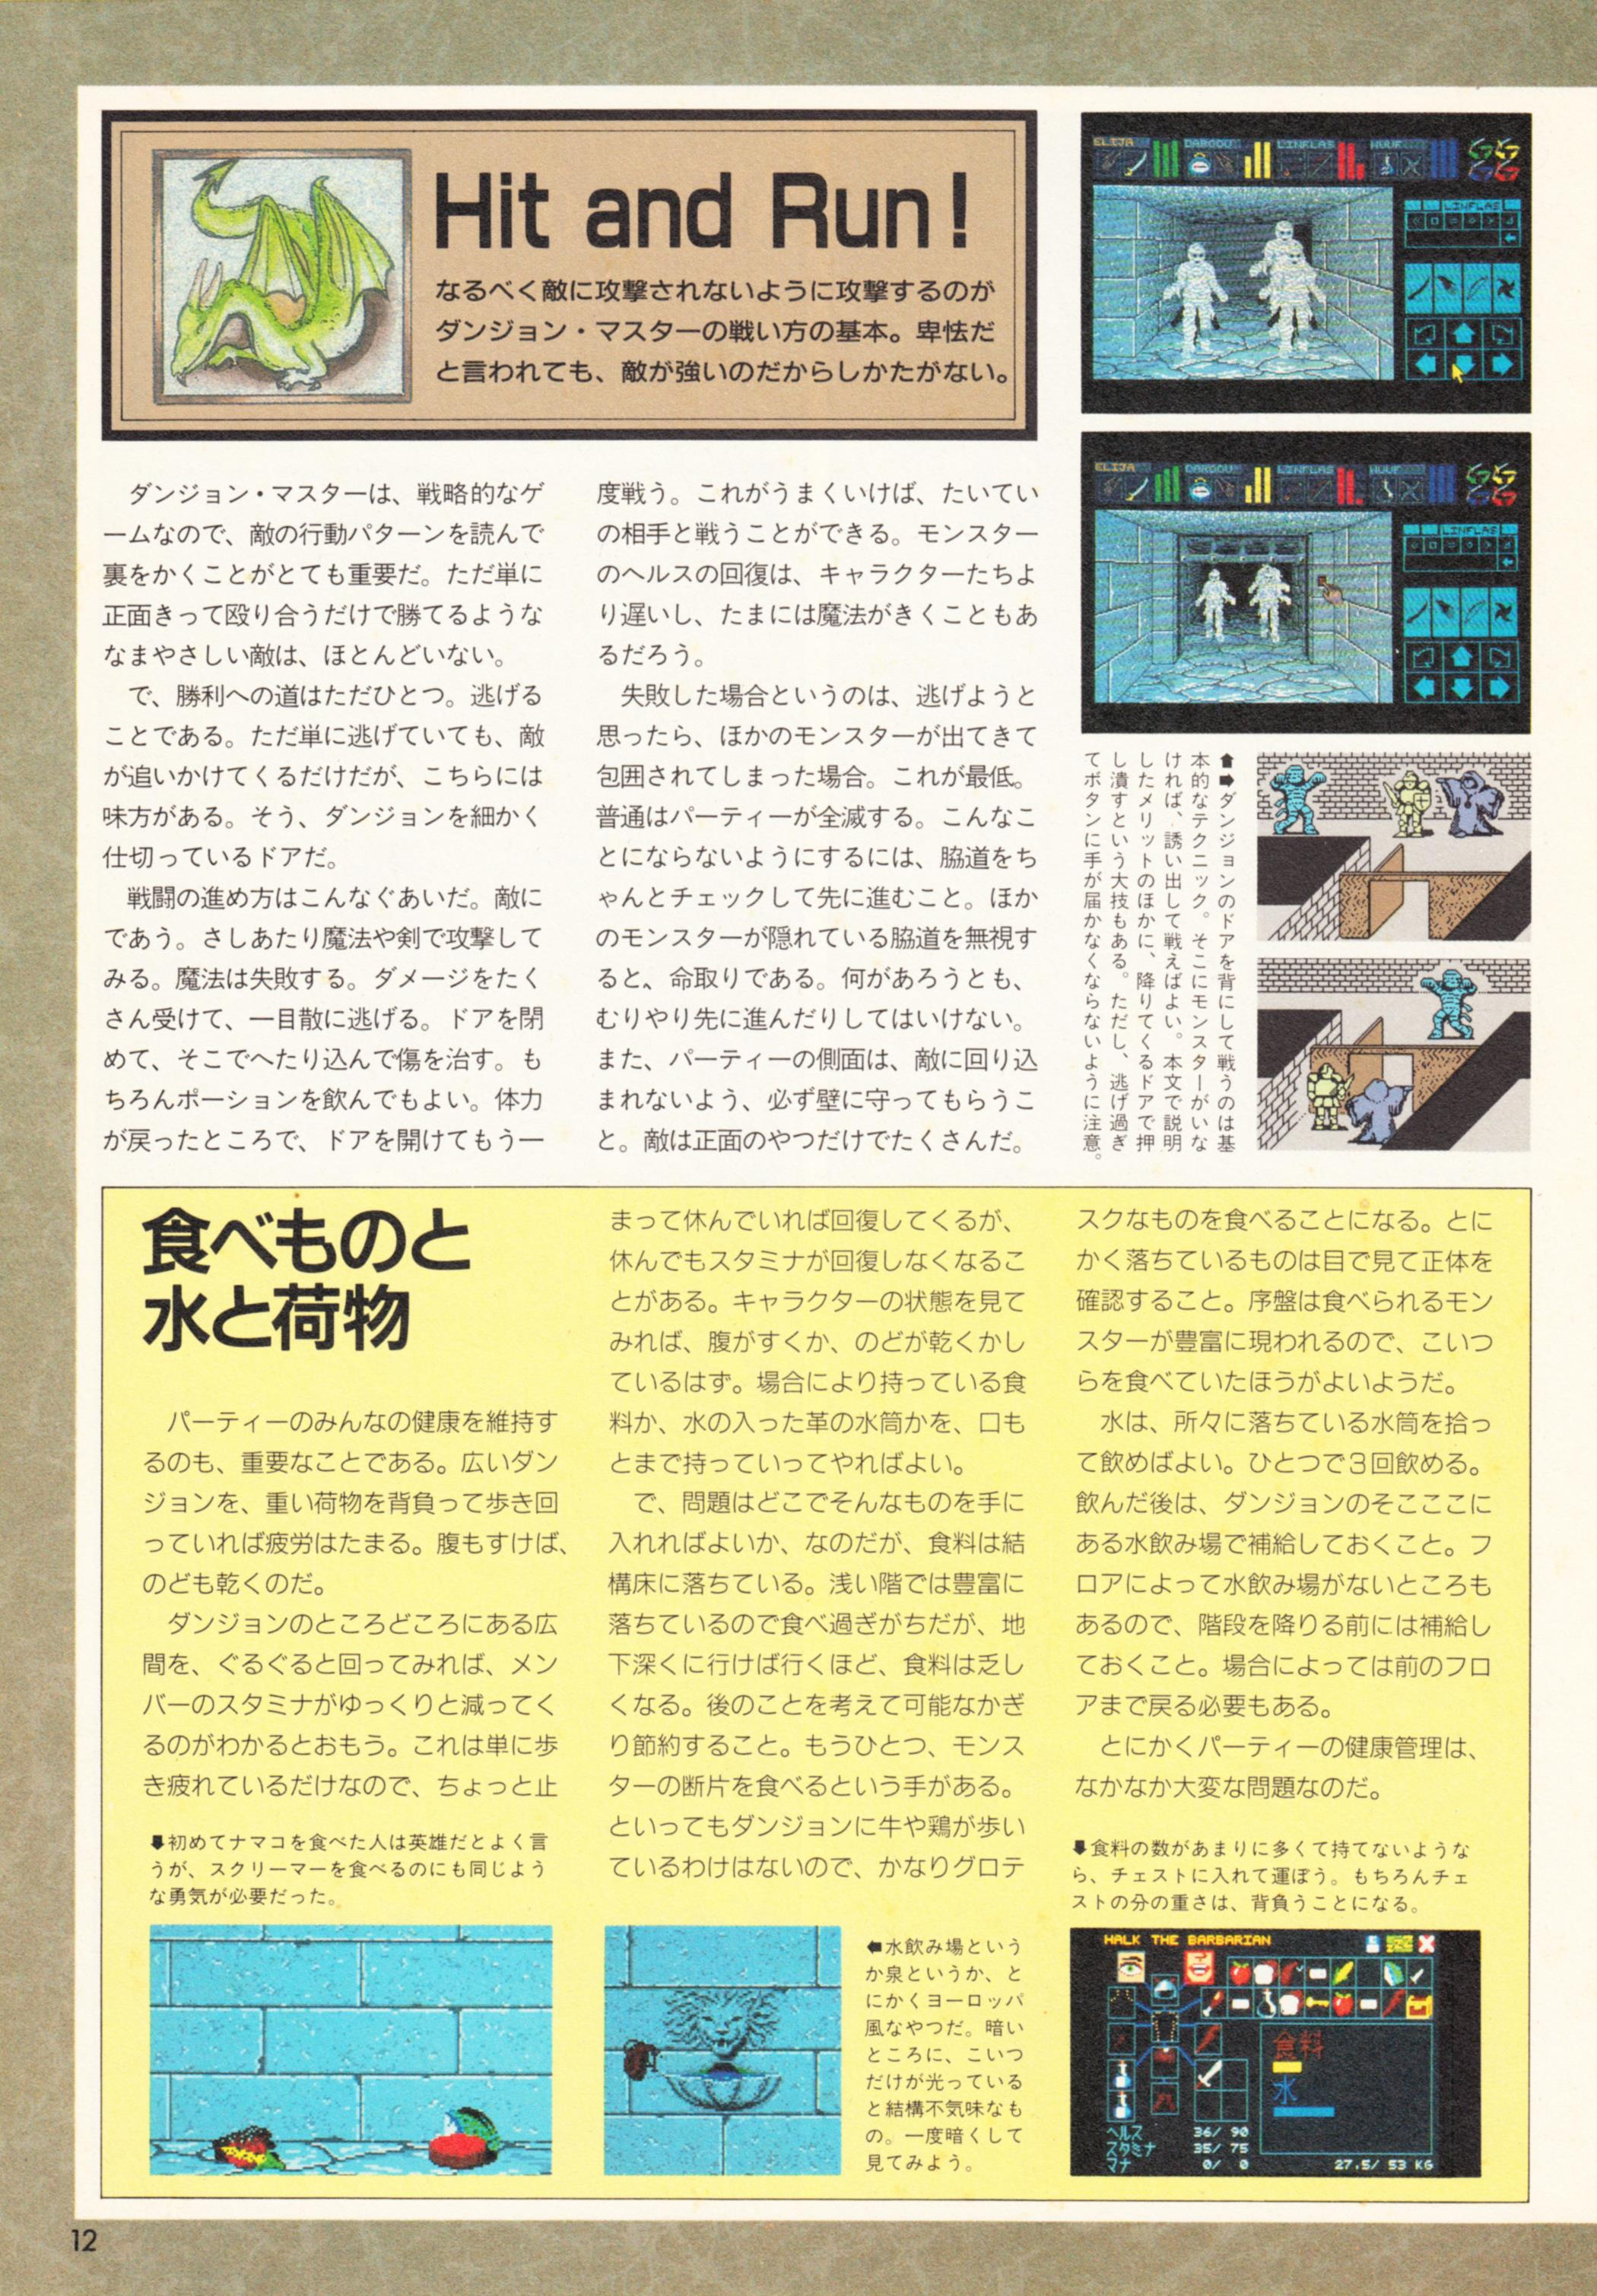 Special Supplement 2 - Dungeon Master Guide published in Japanese magazine 'Login', Vol 9 No 3 02 February 1990, Page 12